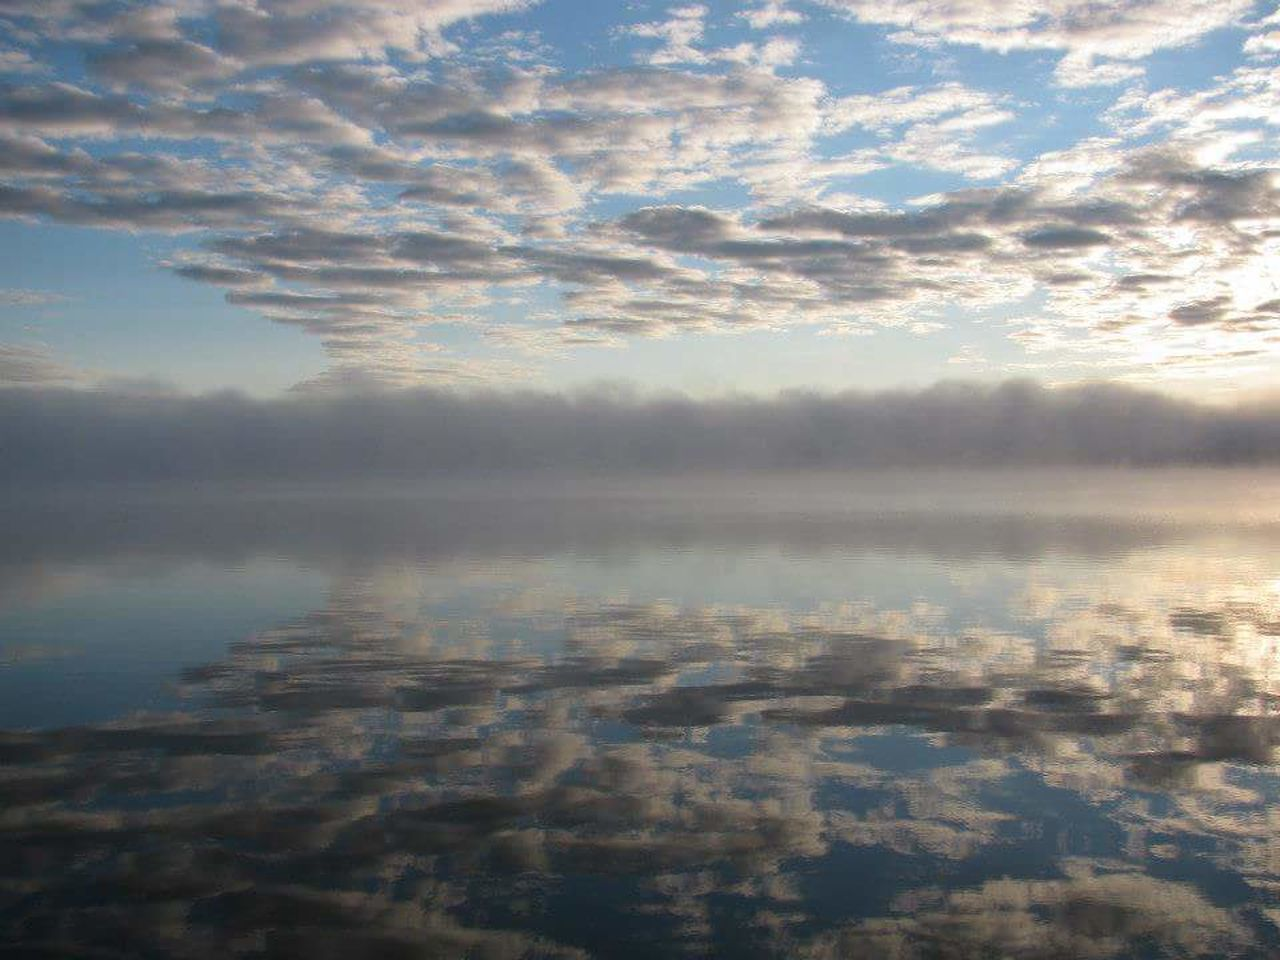 sky, tranquility, tranquil scene, reflection, cloud - sky, nature, scenics, beauty in nature, no people, outdoors, day, water